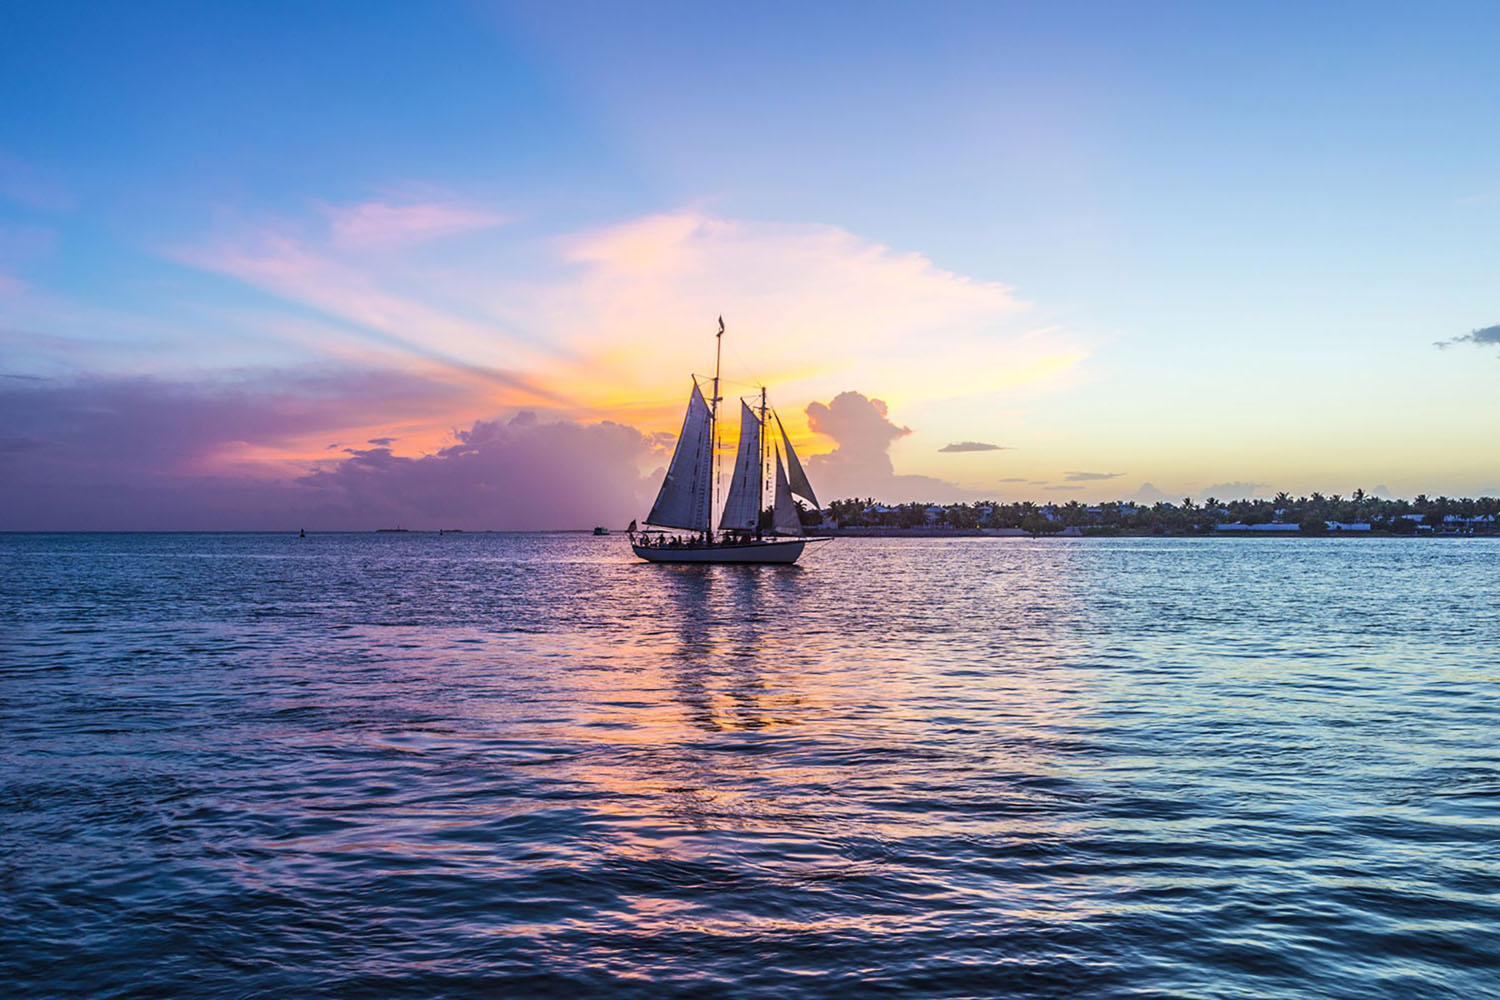 Sunset at Key West with a sail boat on the water